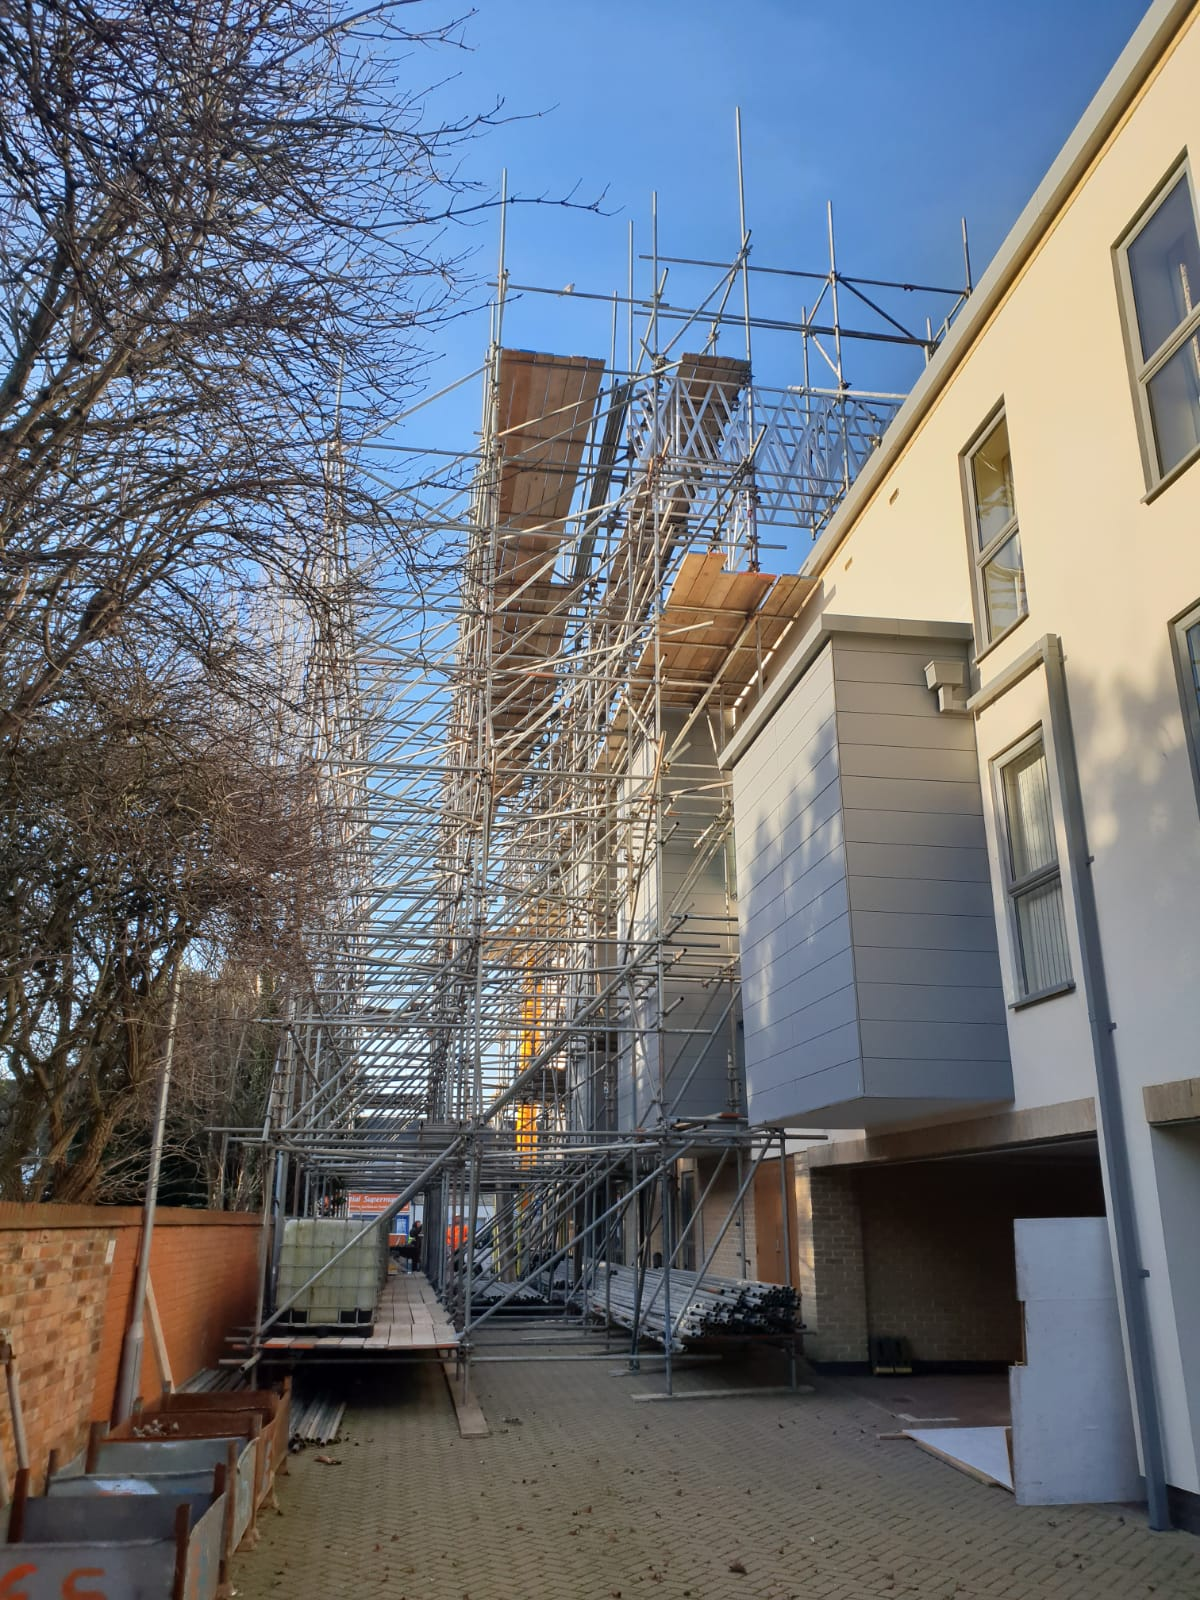 Earls Scaffolding - Access & Temporary Roof Scaffolding - Huntingdon Care Home - Industrial Scaffolding v12